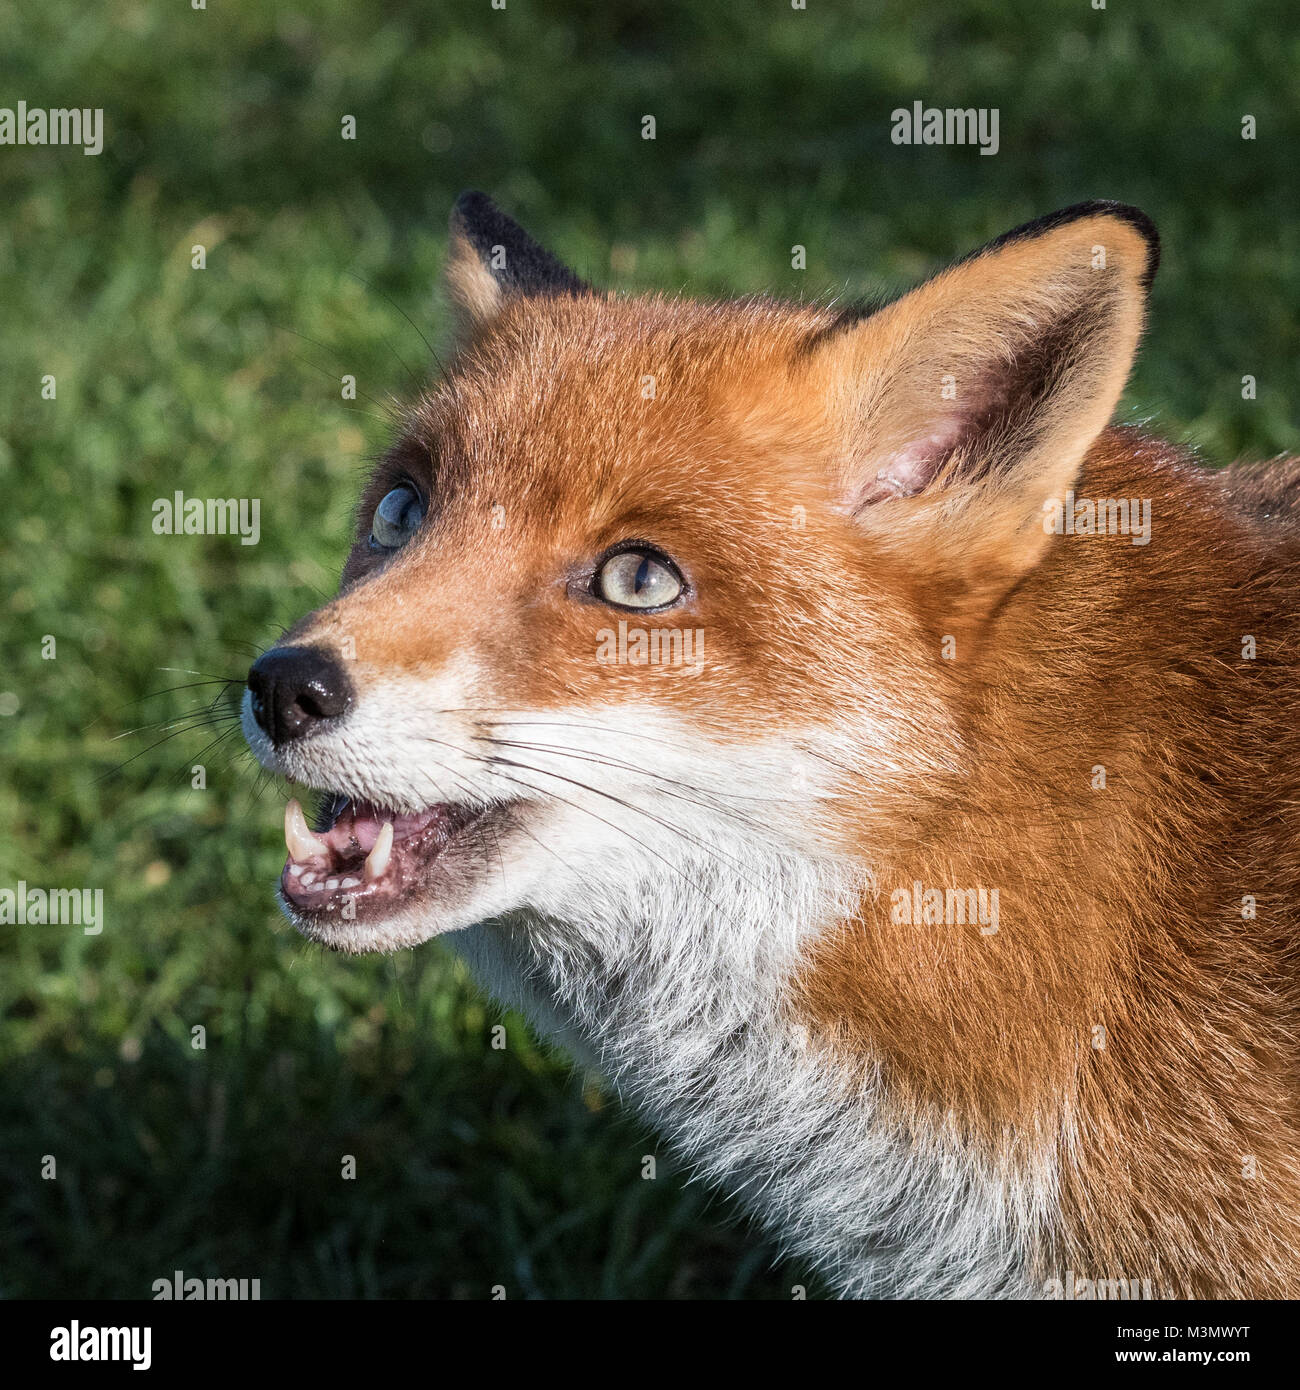 Fox (Vulpes vulpes) Close Up - Stock Image